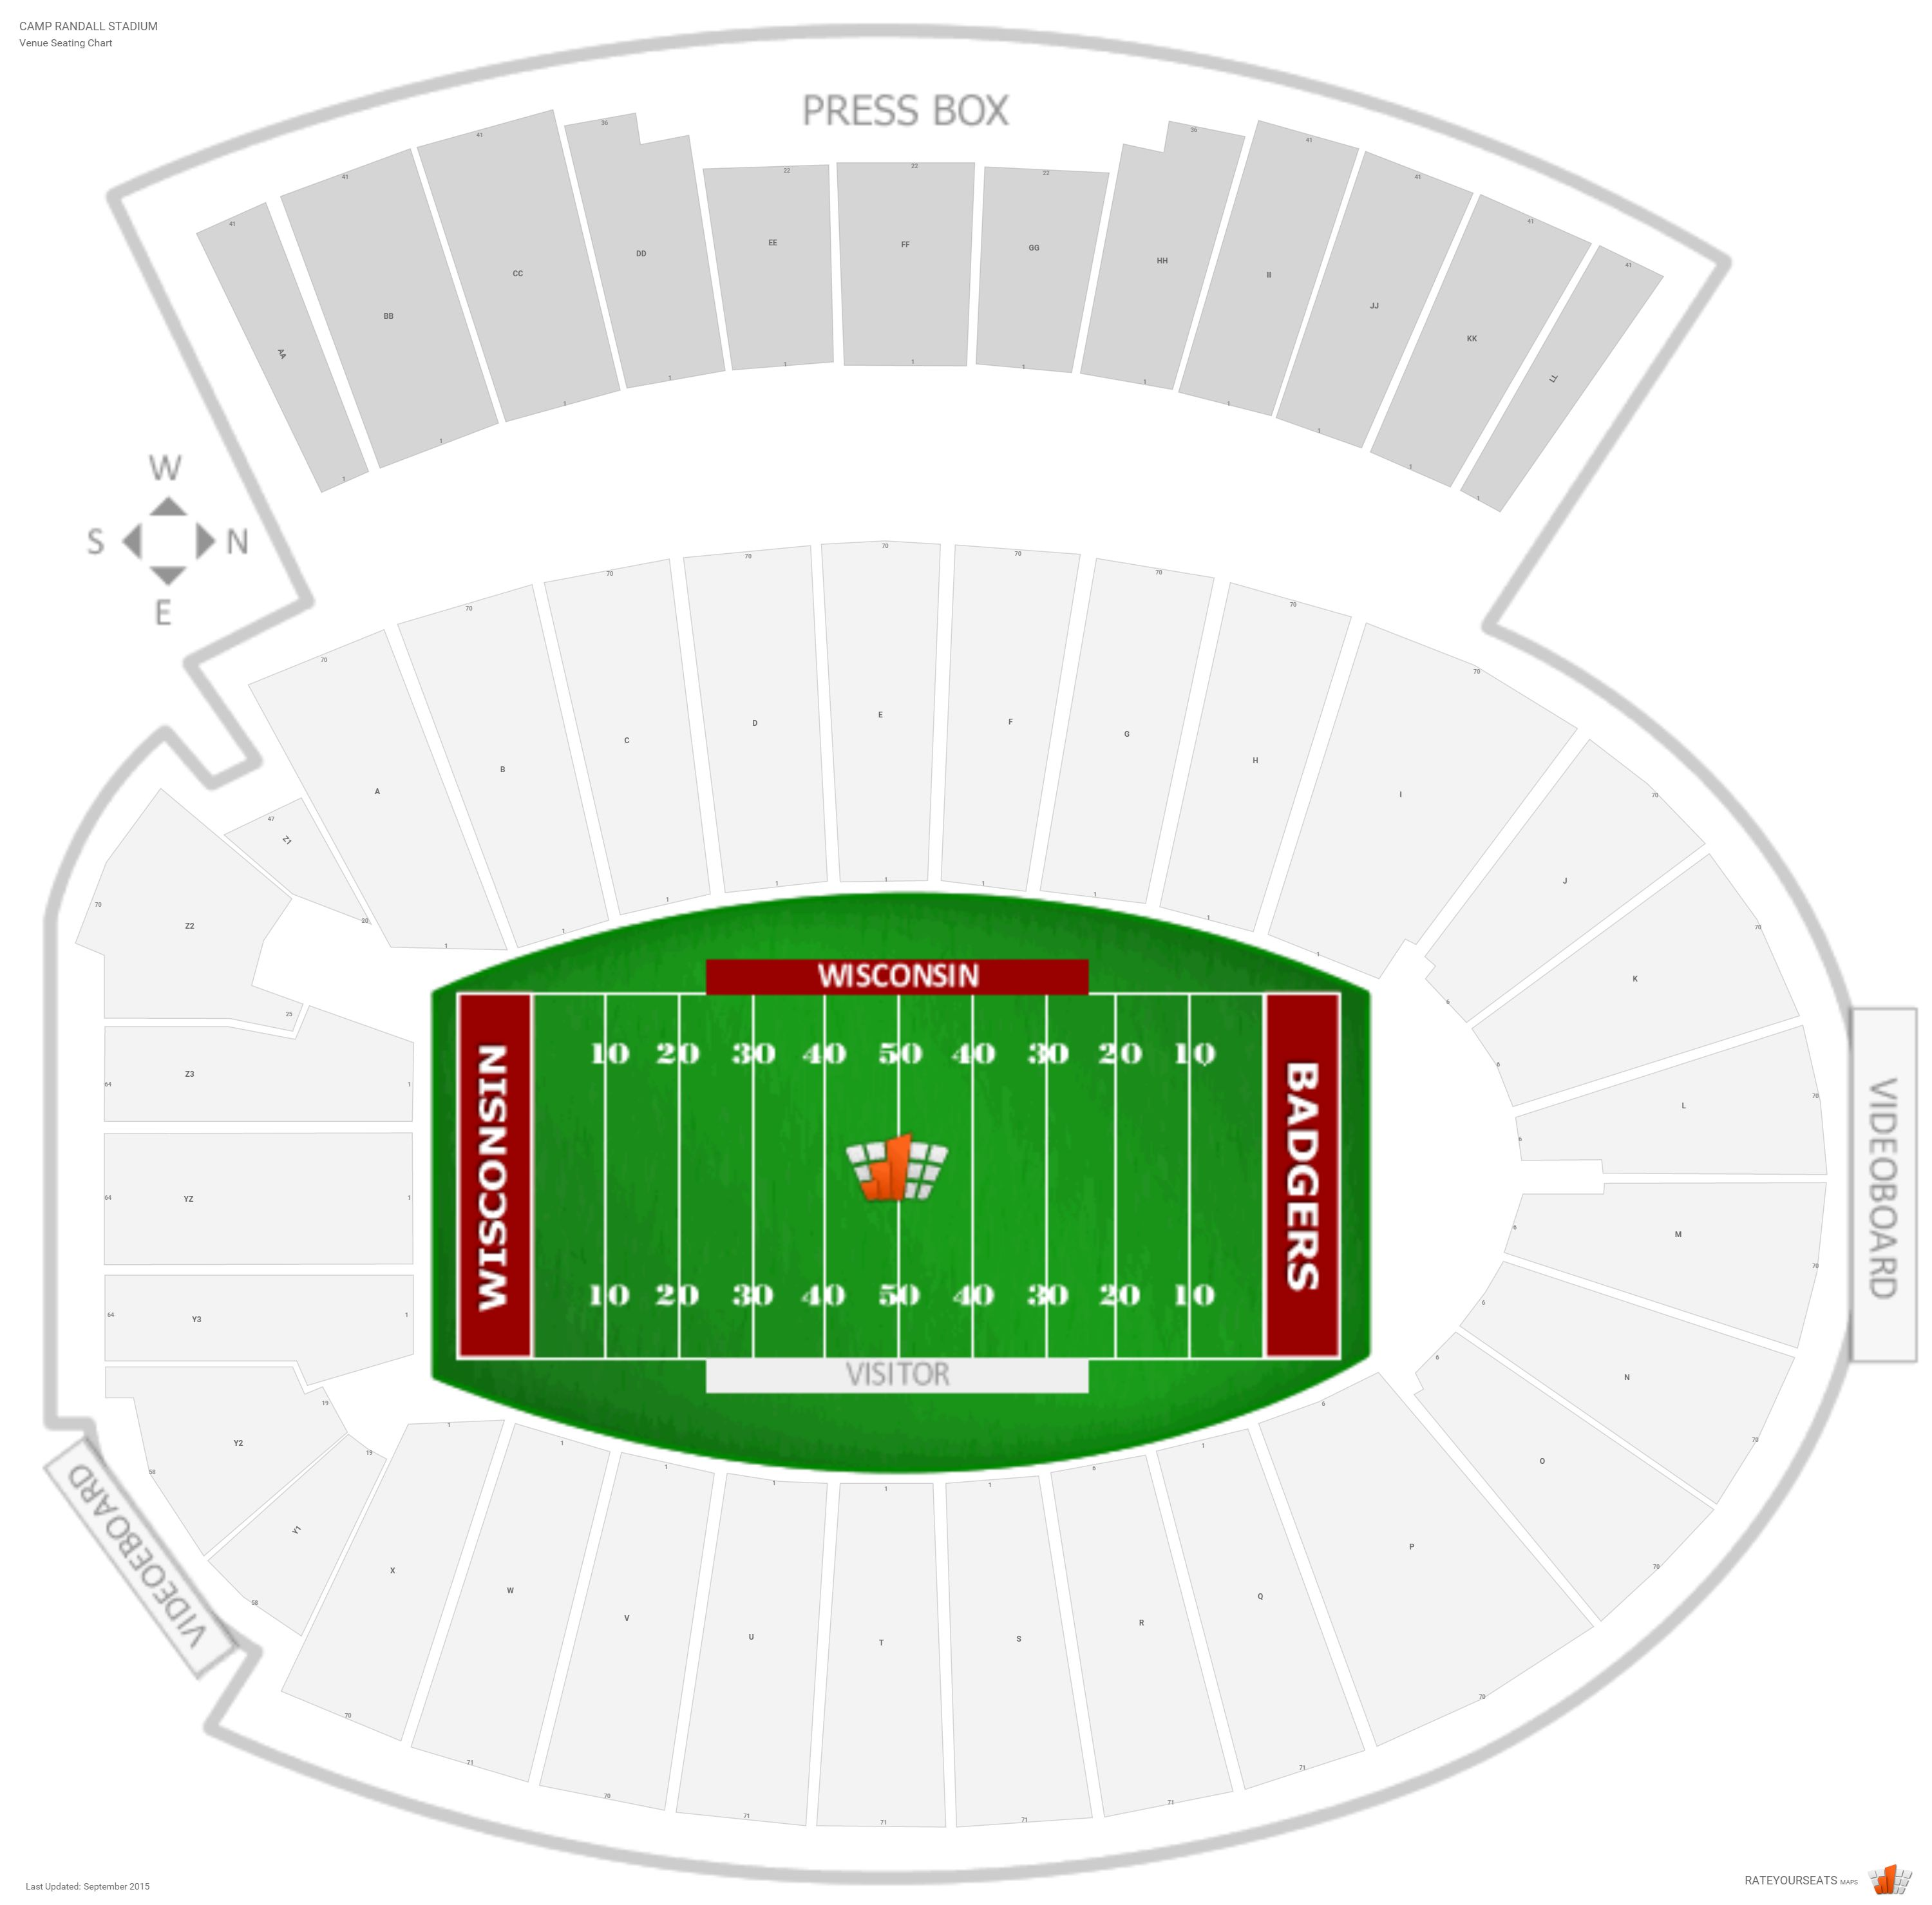 camp randall stadium wisconsin seating guide. Black Bedroom Furniture Sets. Home Design Ideas